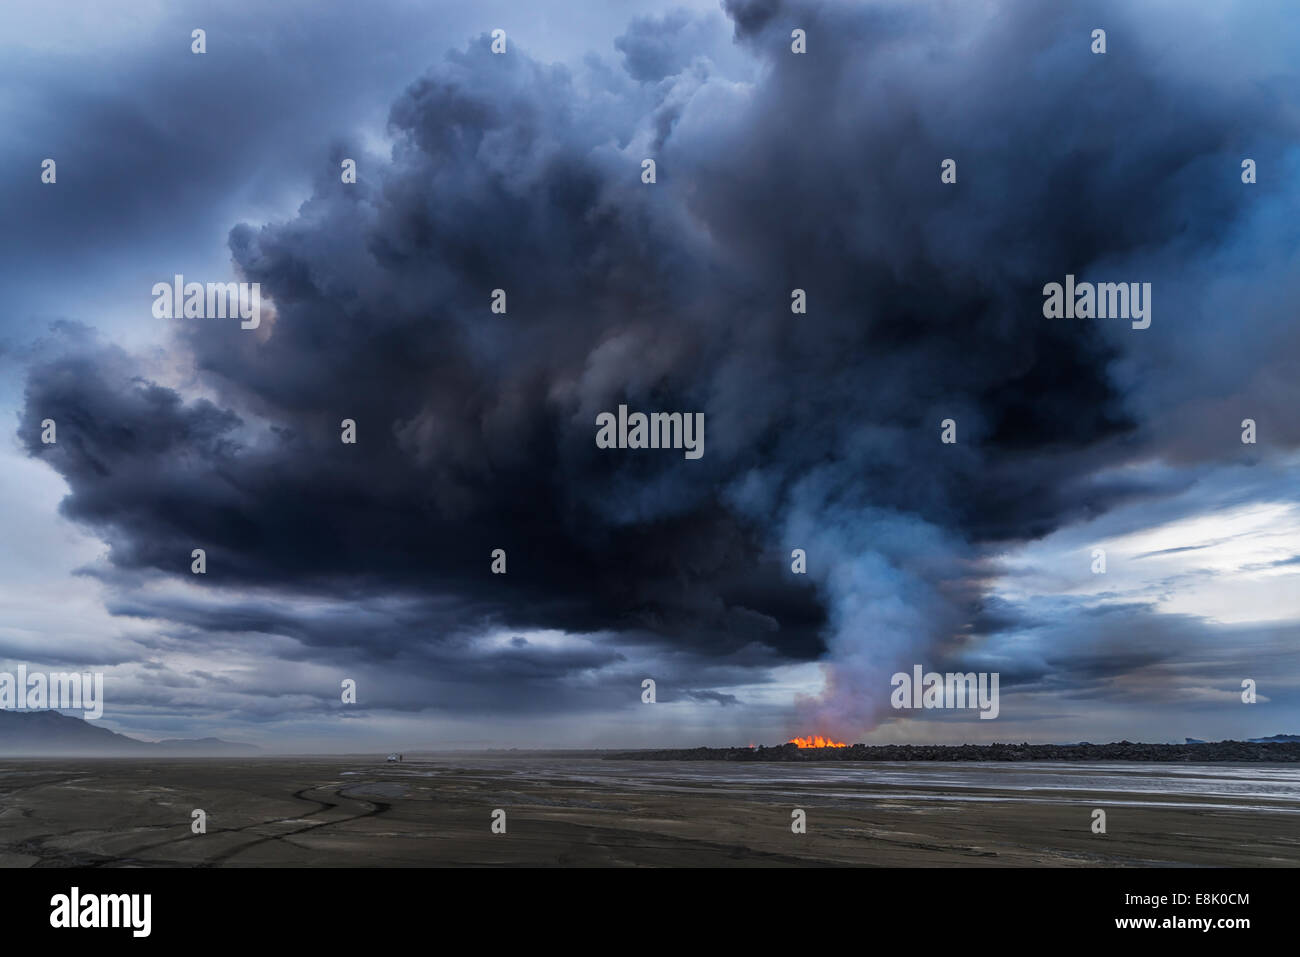 Volcanic Plumes with toxic gases, Holuhraun Fissure Eruption, Iceland. - Stock Image